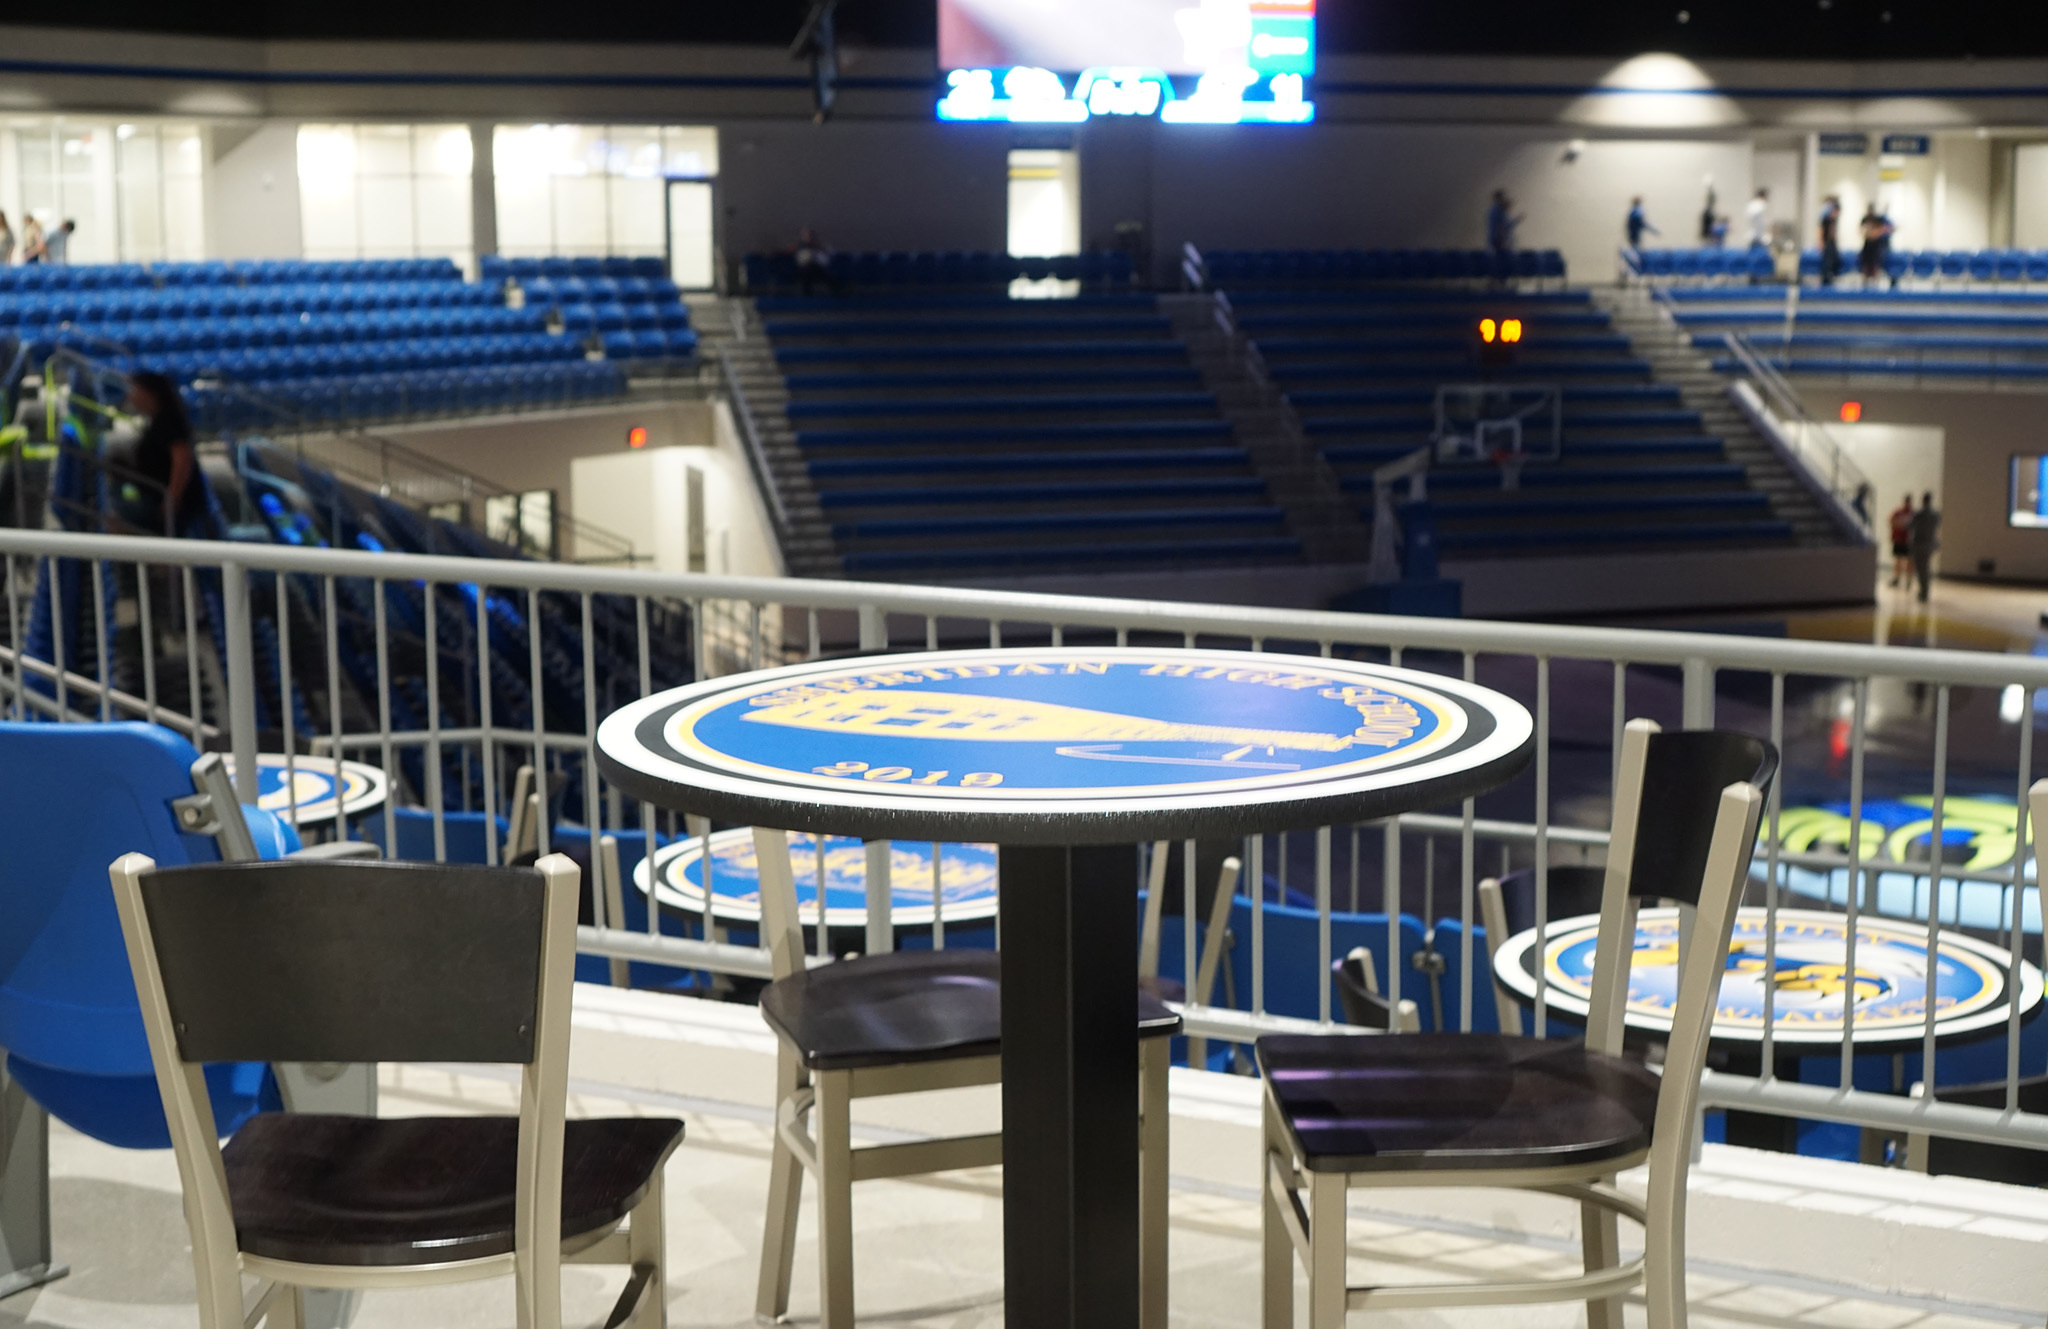 Table in arena